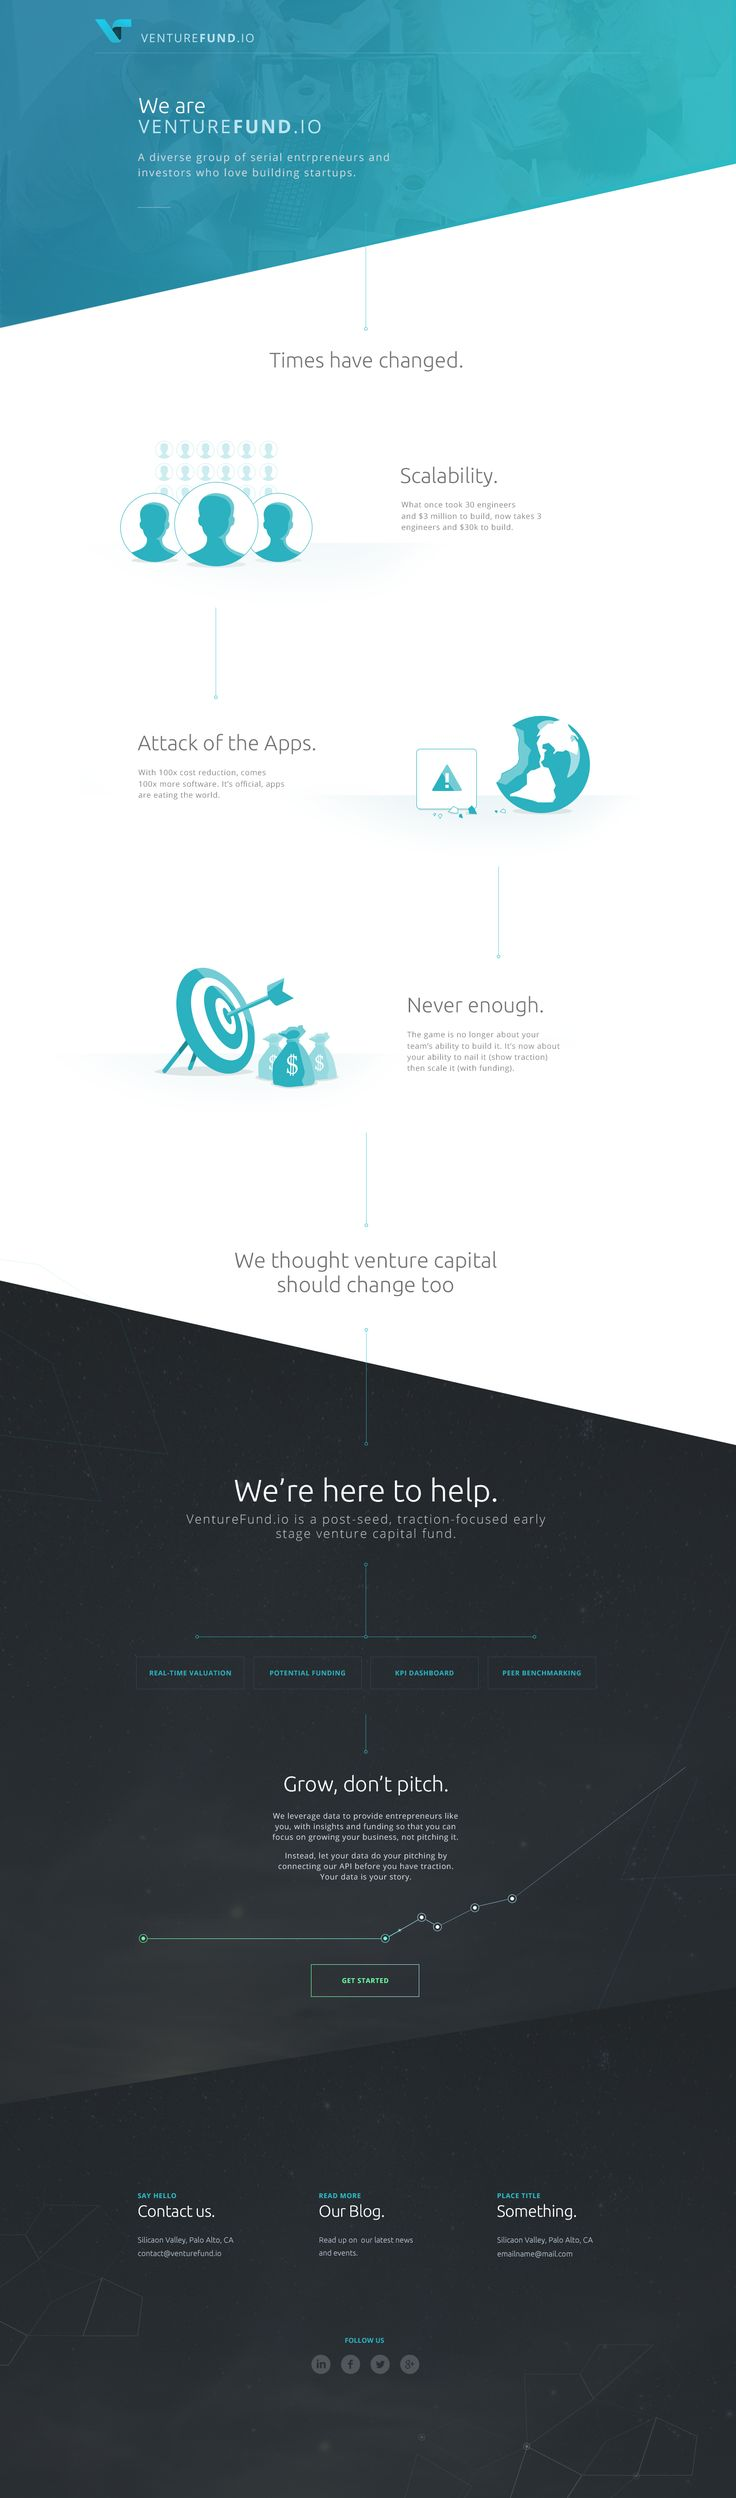 Unique Web Design, VentureFund.io via @pookhan #Web #Design #Flat